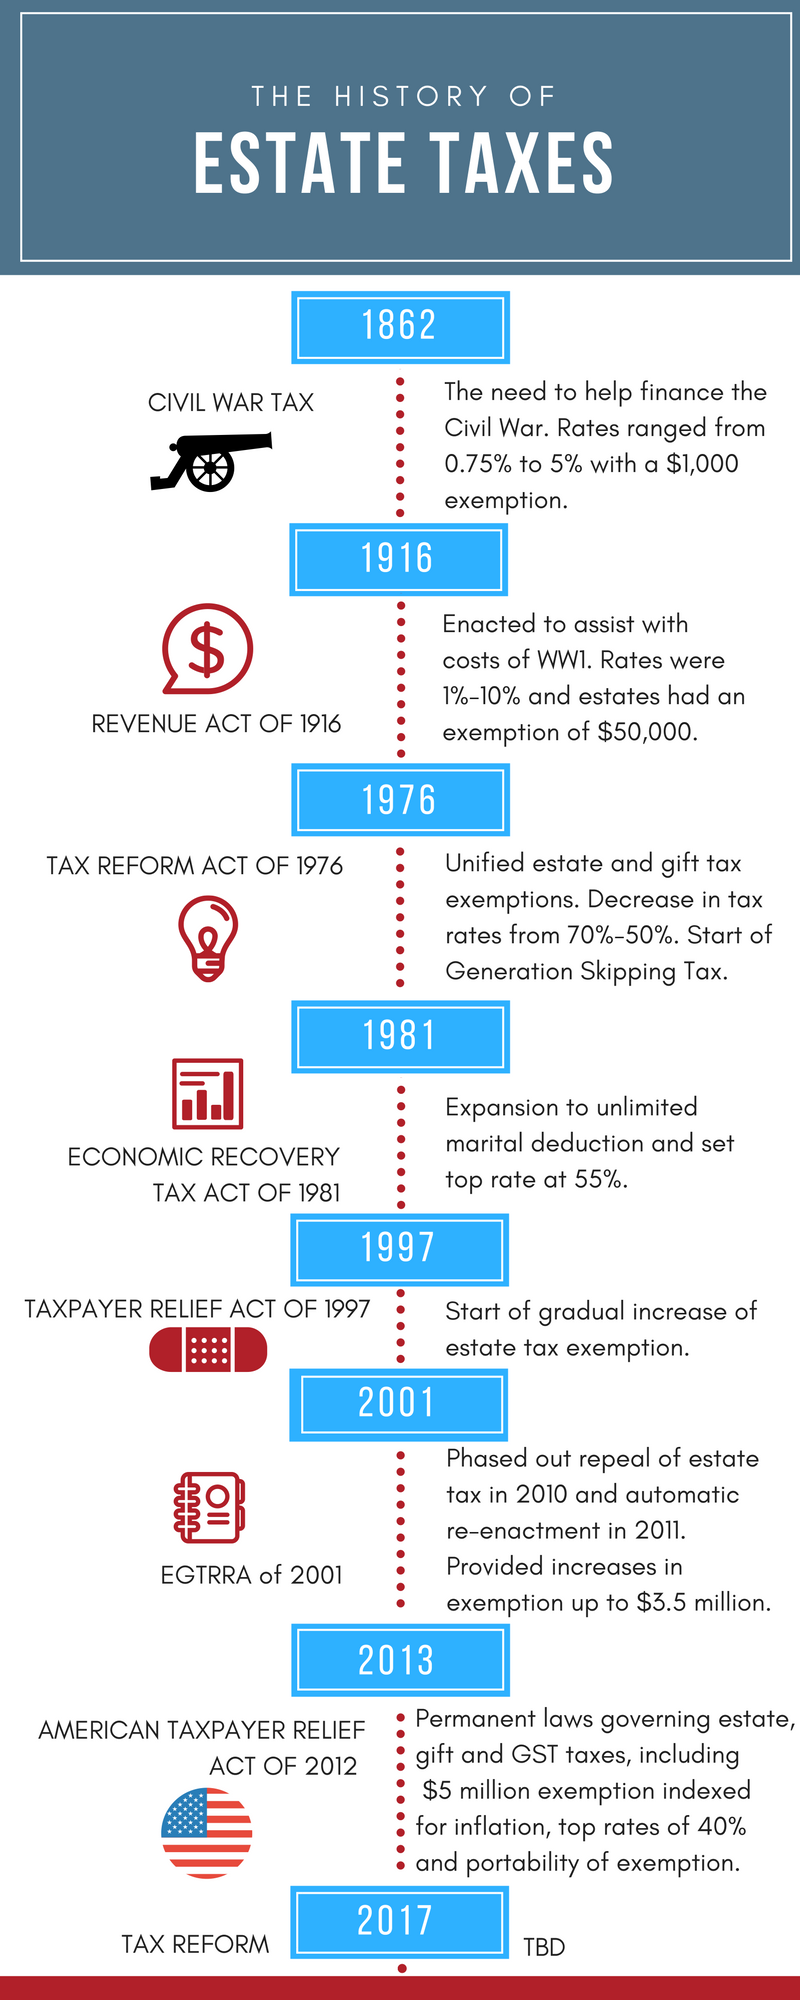 History of Estate Taxes Infographic 2017.png